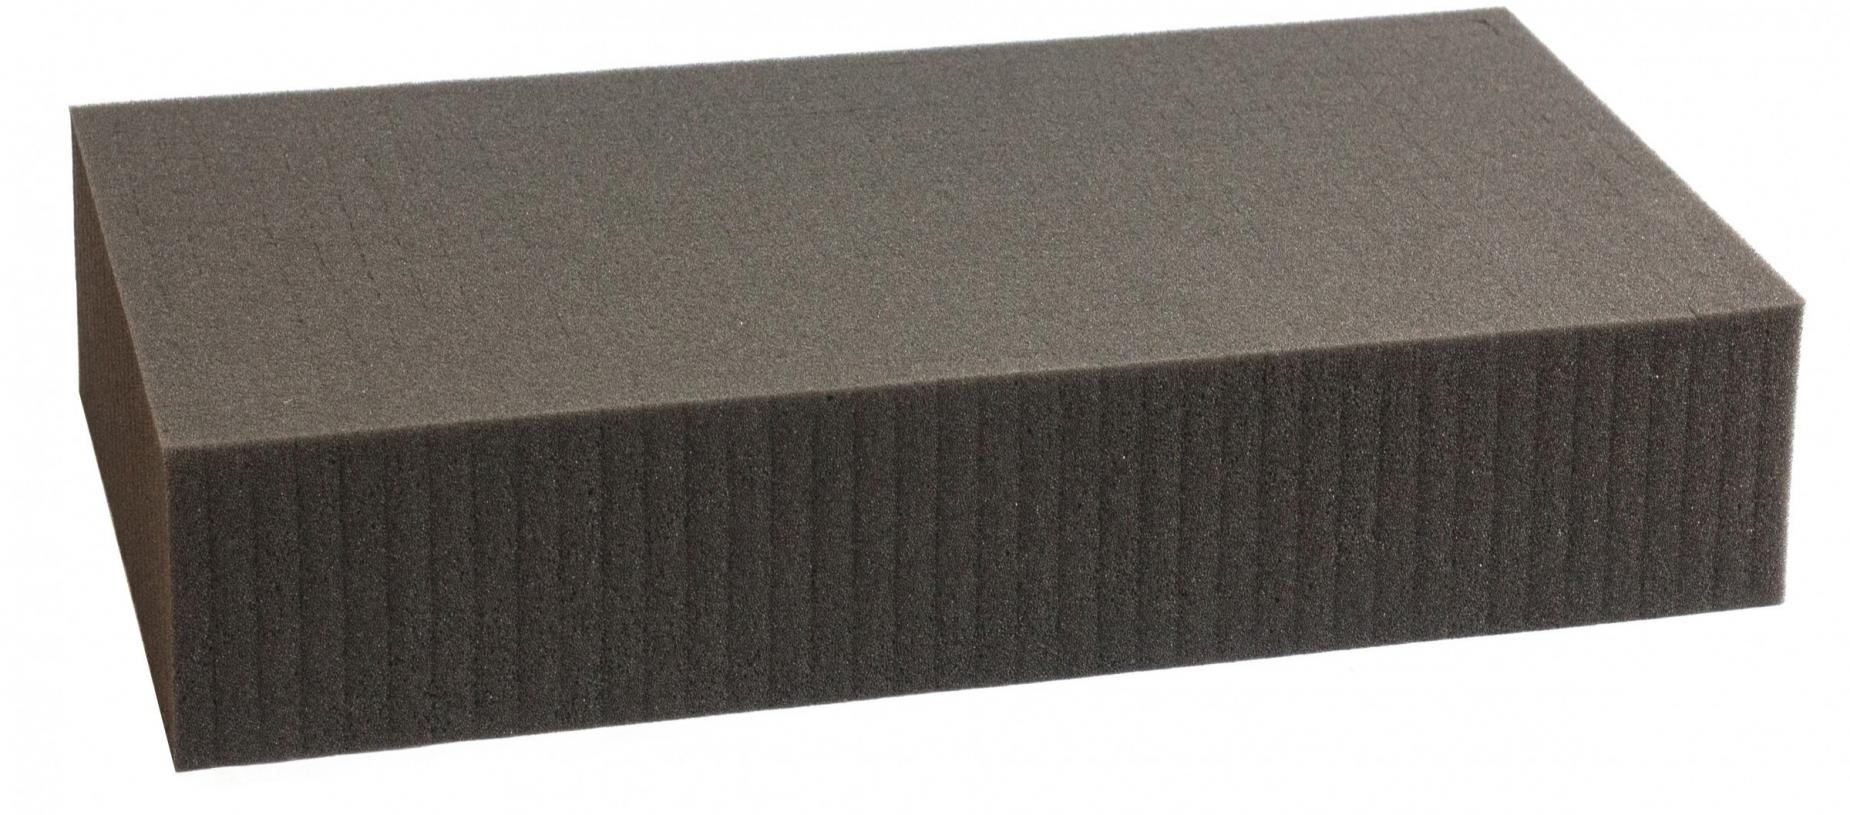 550 mm x 350 mm x 100 mm - Raster 15 mm - Pick and Pluck / Pre-Cubed foam tray